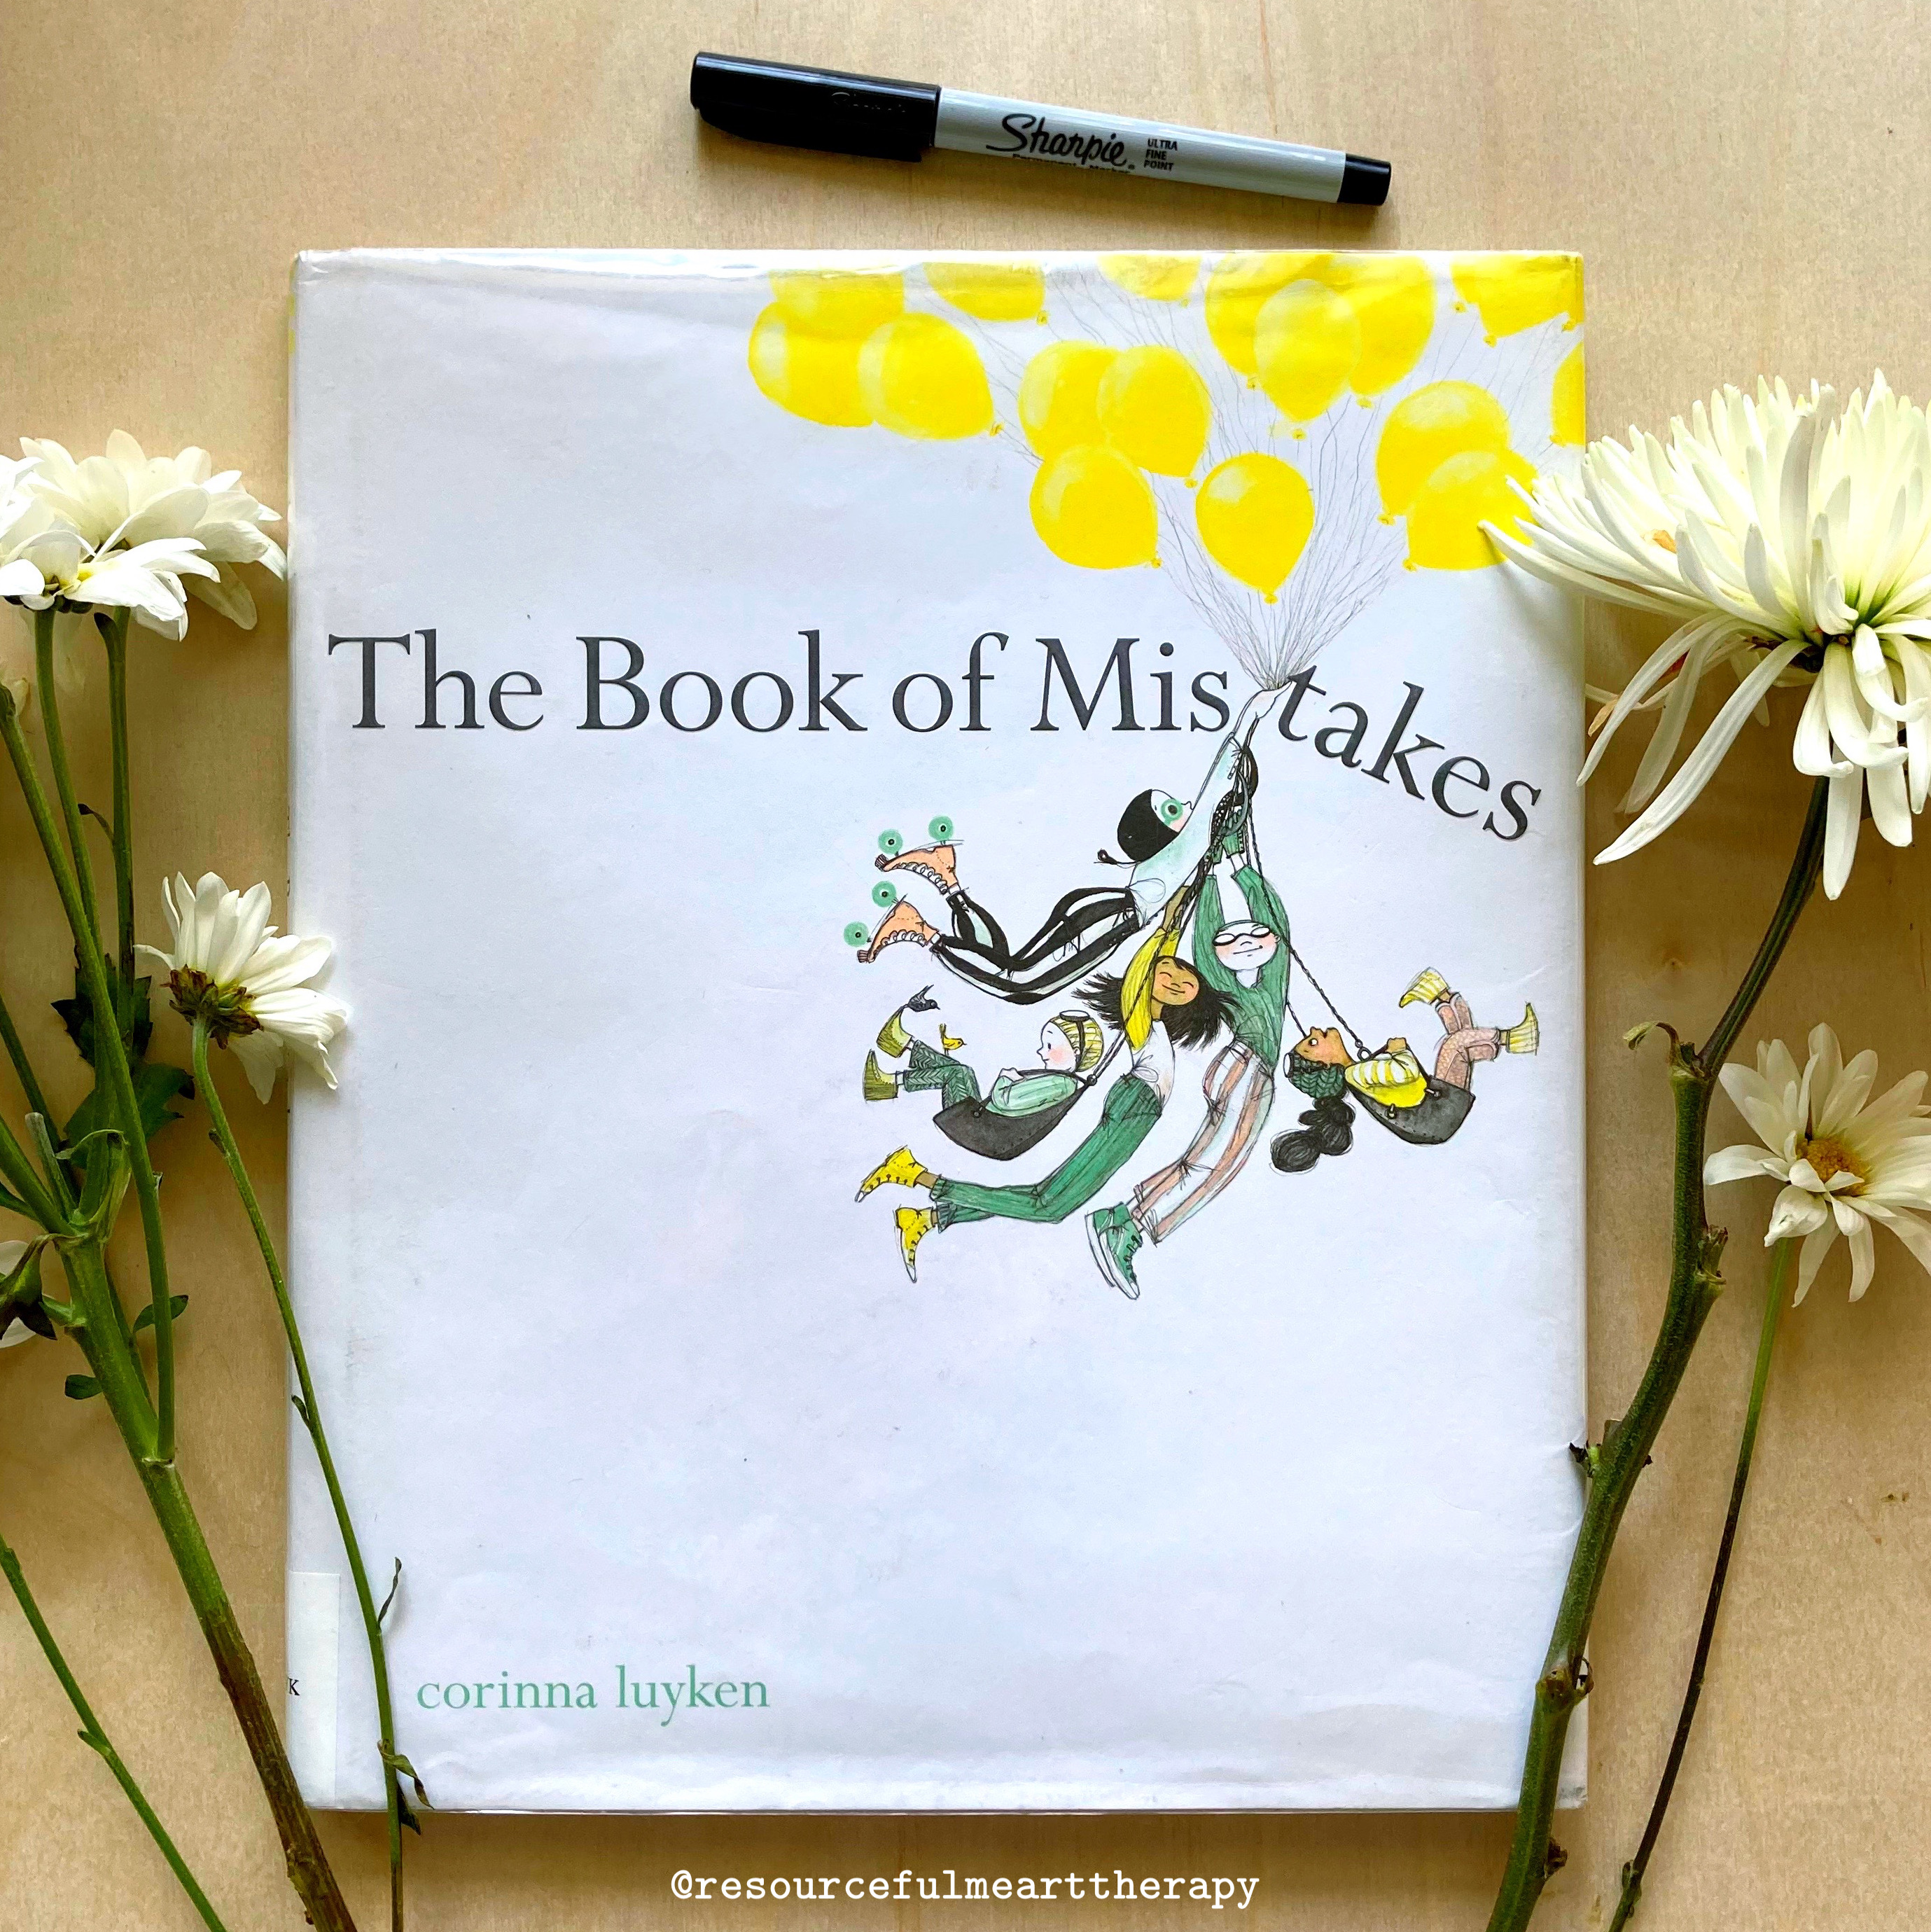 """Photo of the children's book """"The Book of Mistakes"""" by Corinna Luyken, surrounded by cut flowers"""